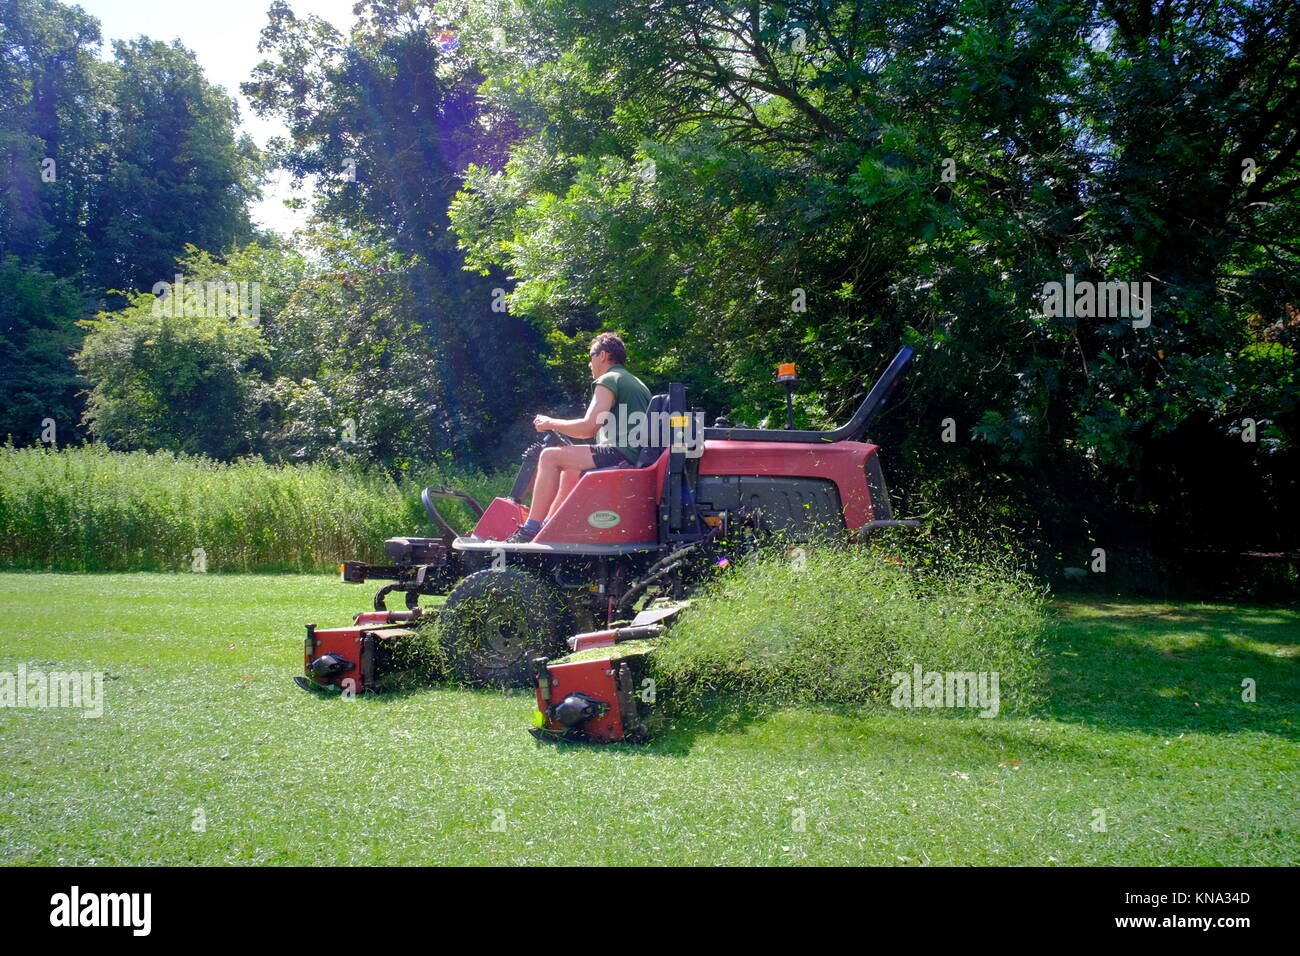 Ride on lawn mower stock photos ride on lawn mower stock for Lawn mower cutting grass